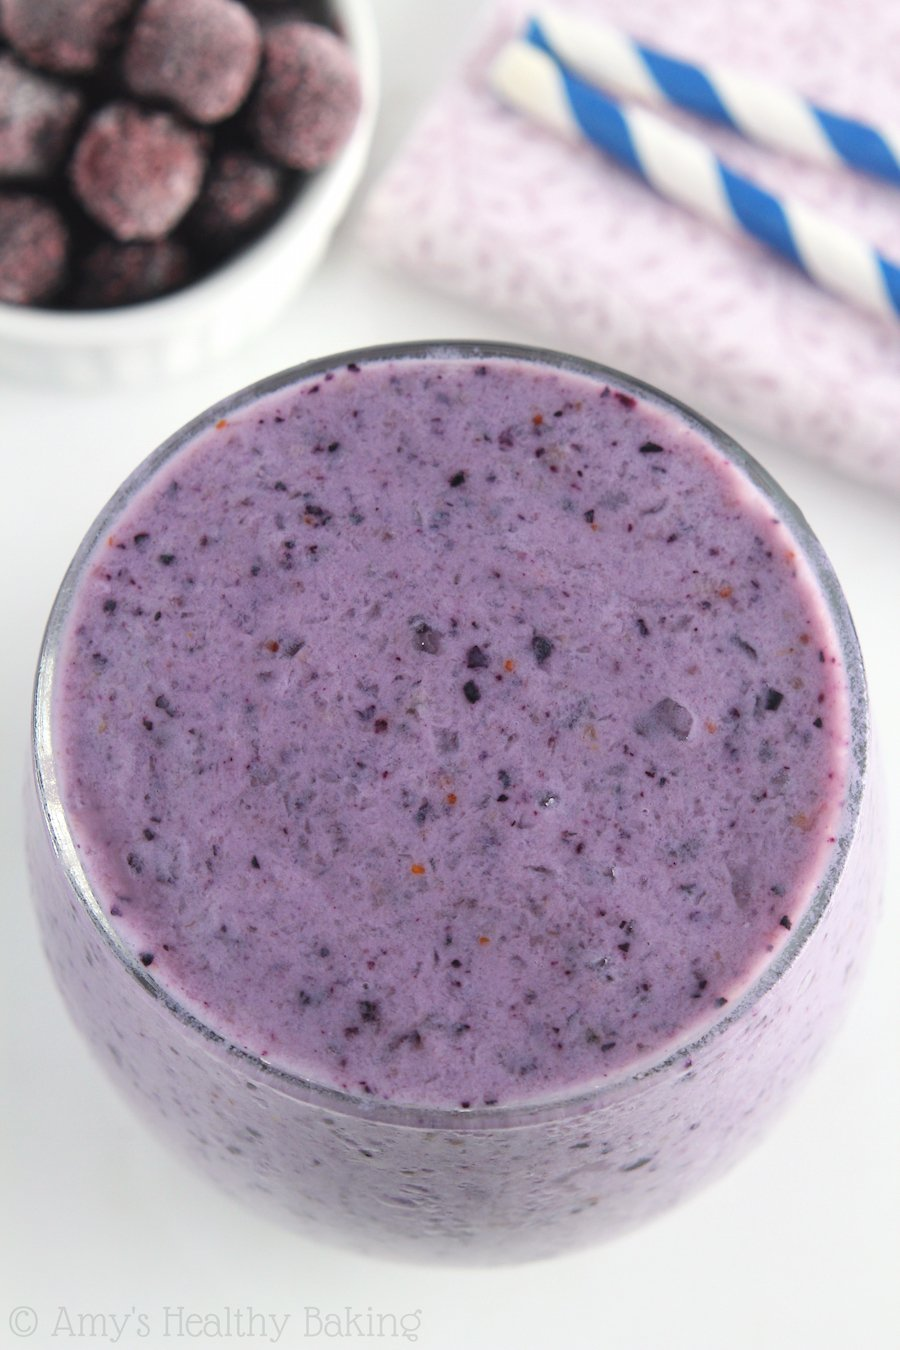 Blueberry Banana Protein Smoothie -- start your day with 19g+ of protein in this sweet, skinny drink! Only 5 ingredients, including ice!